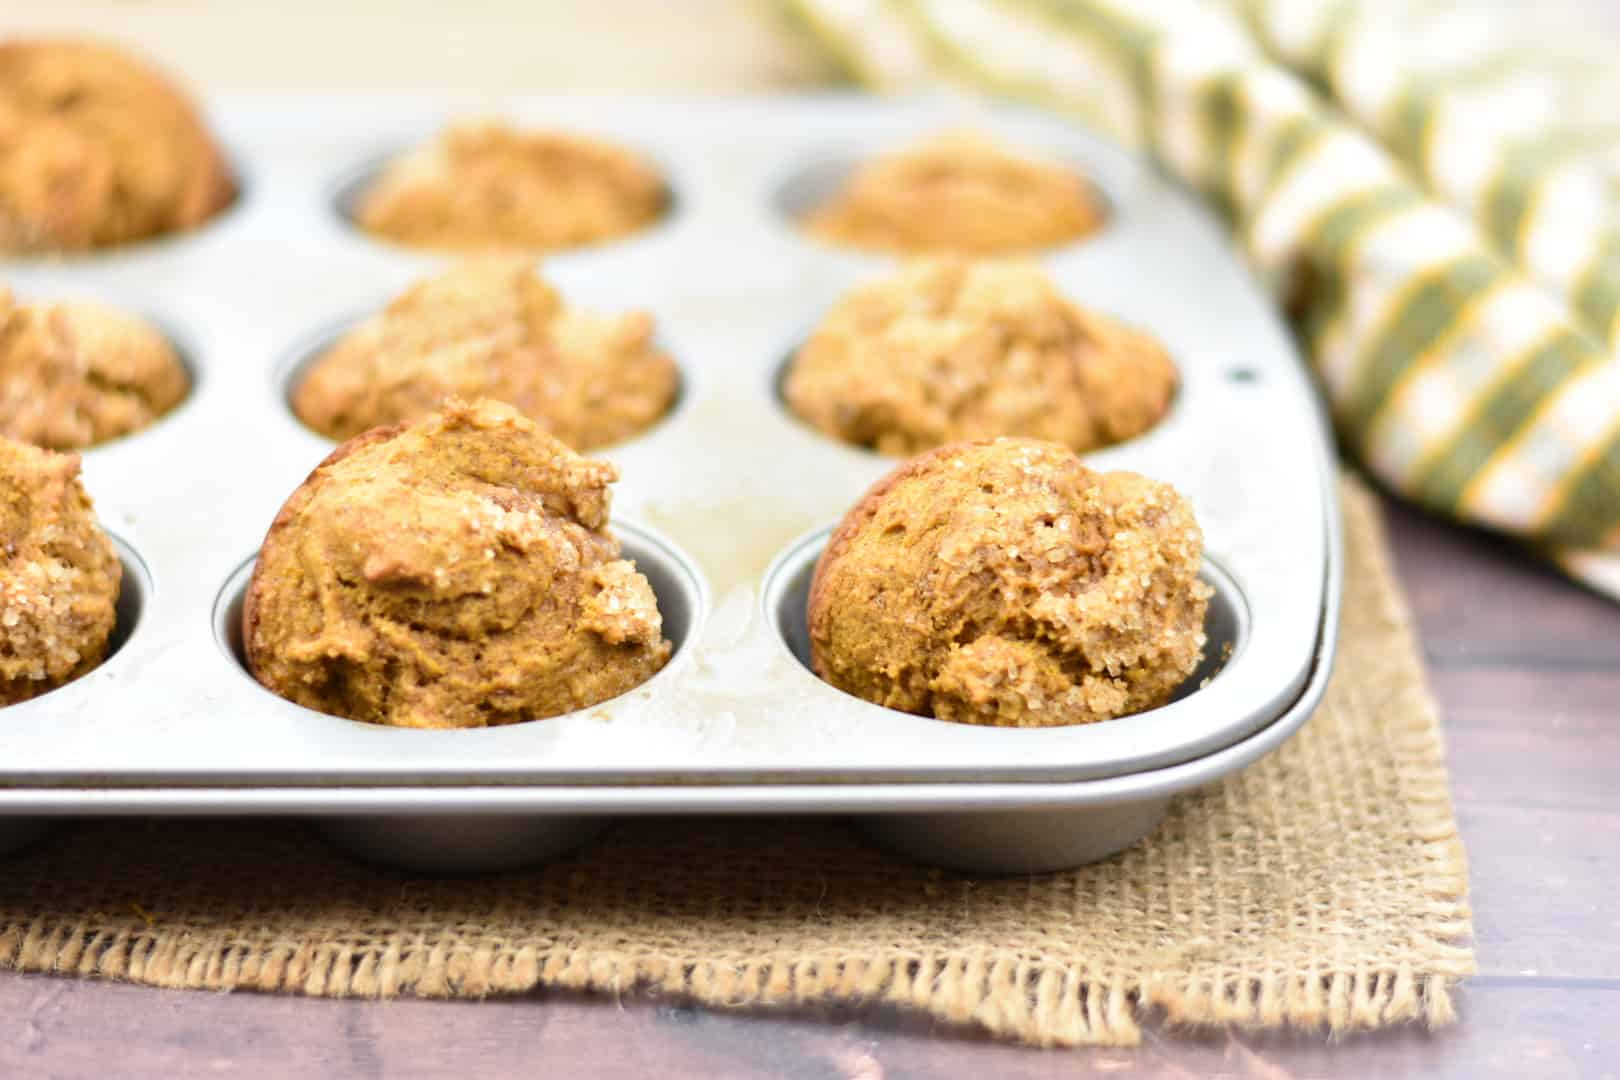 whole wheat pumpkin muffins finished baking in pan